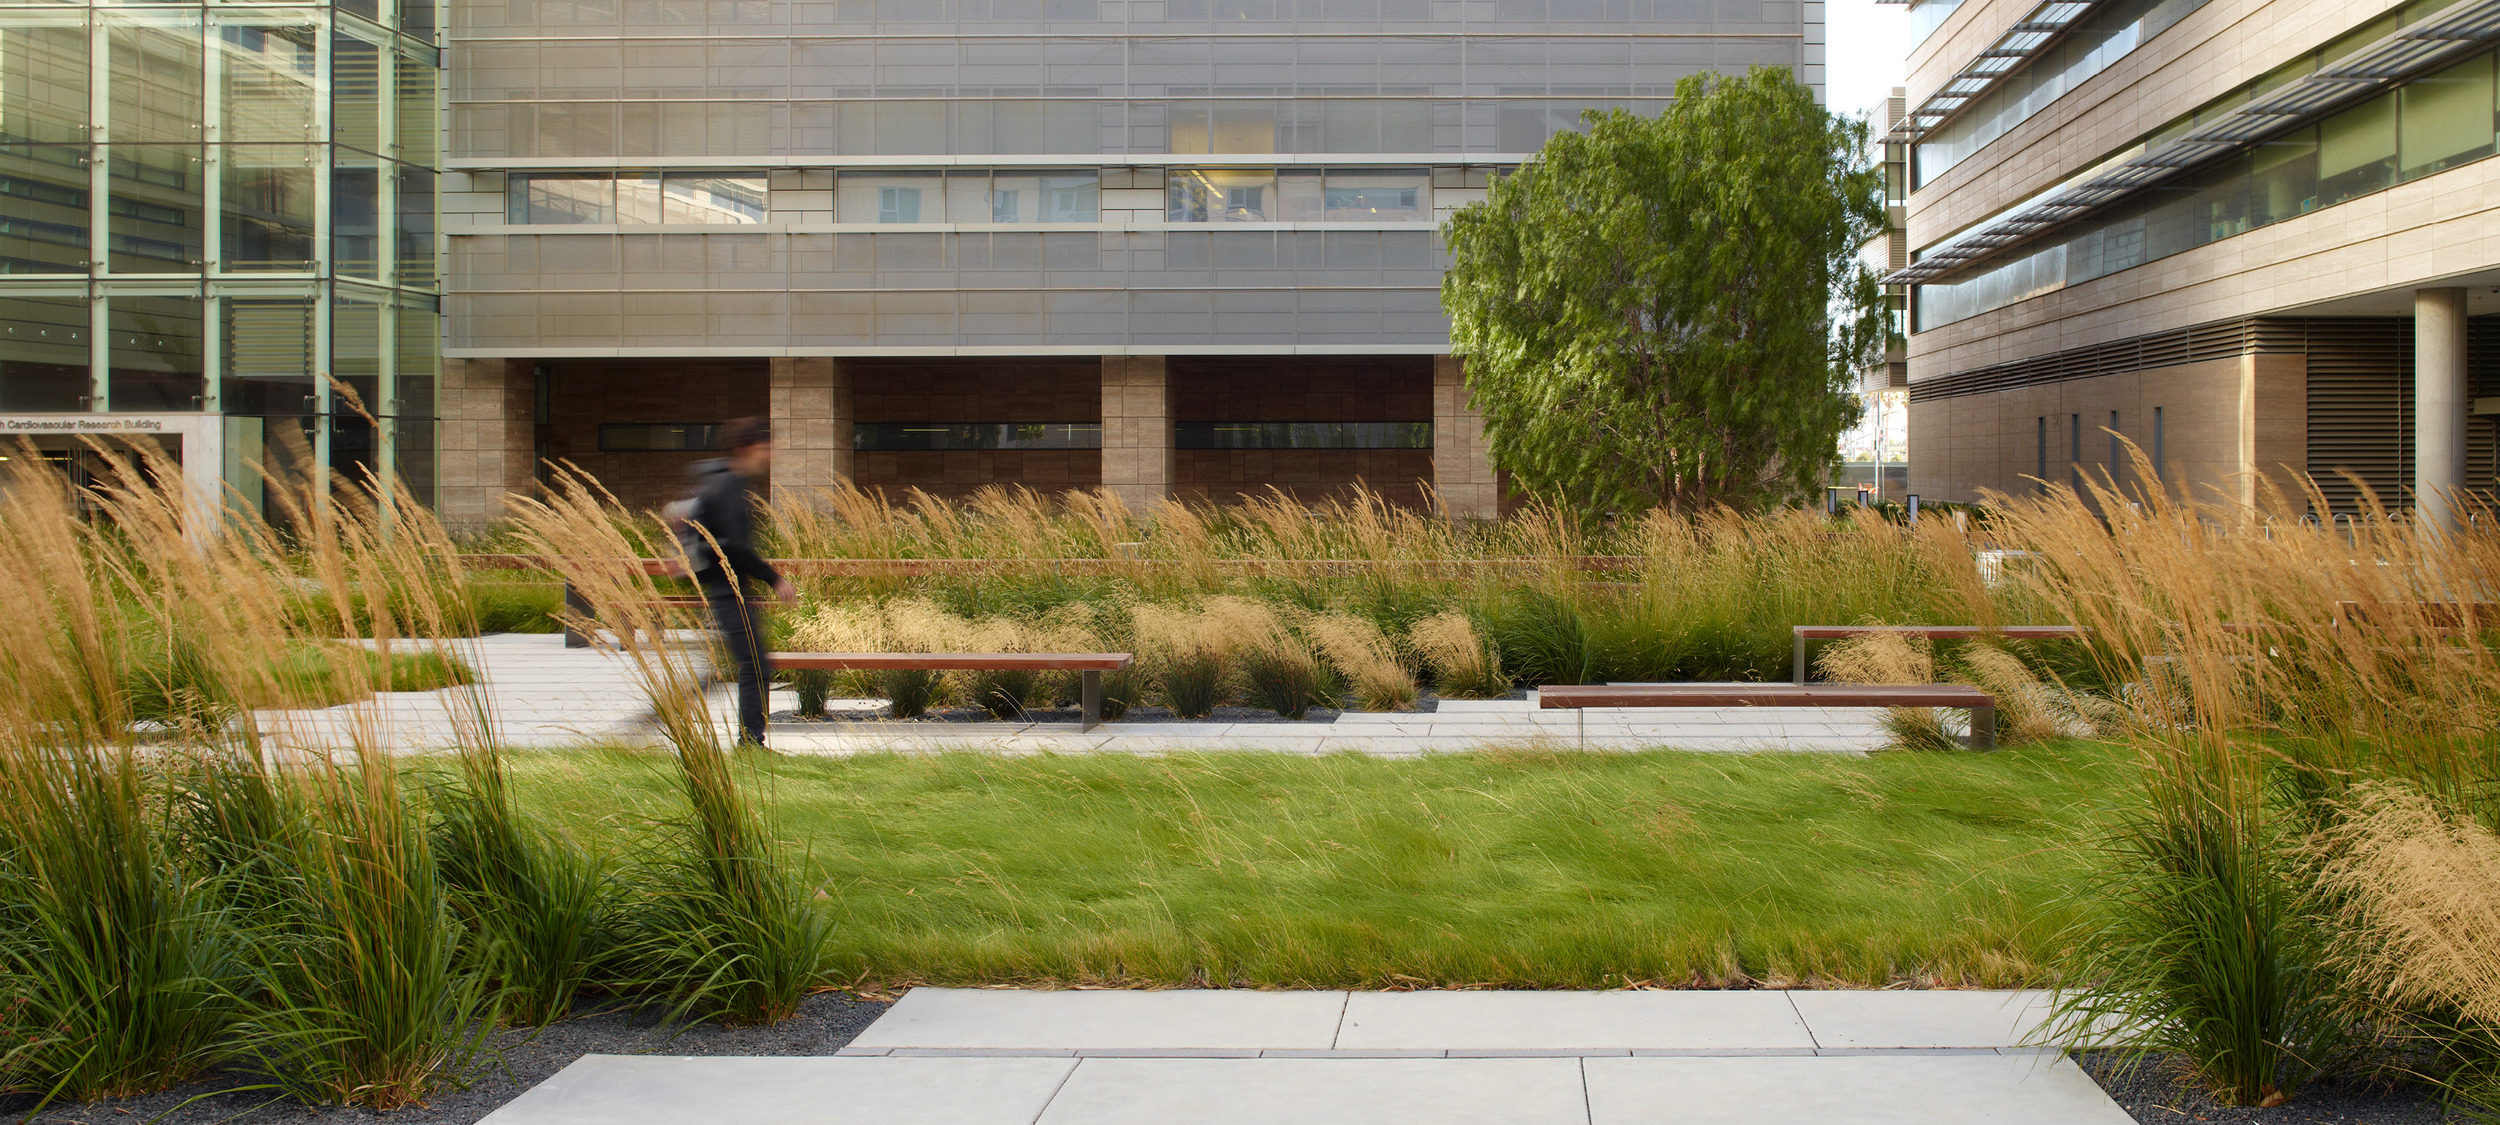 Awesome top Landscape Architecture Firms